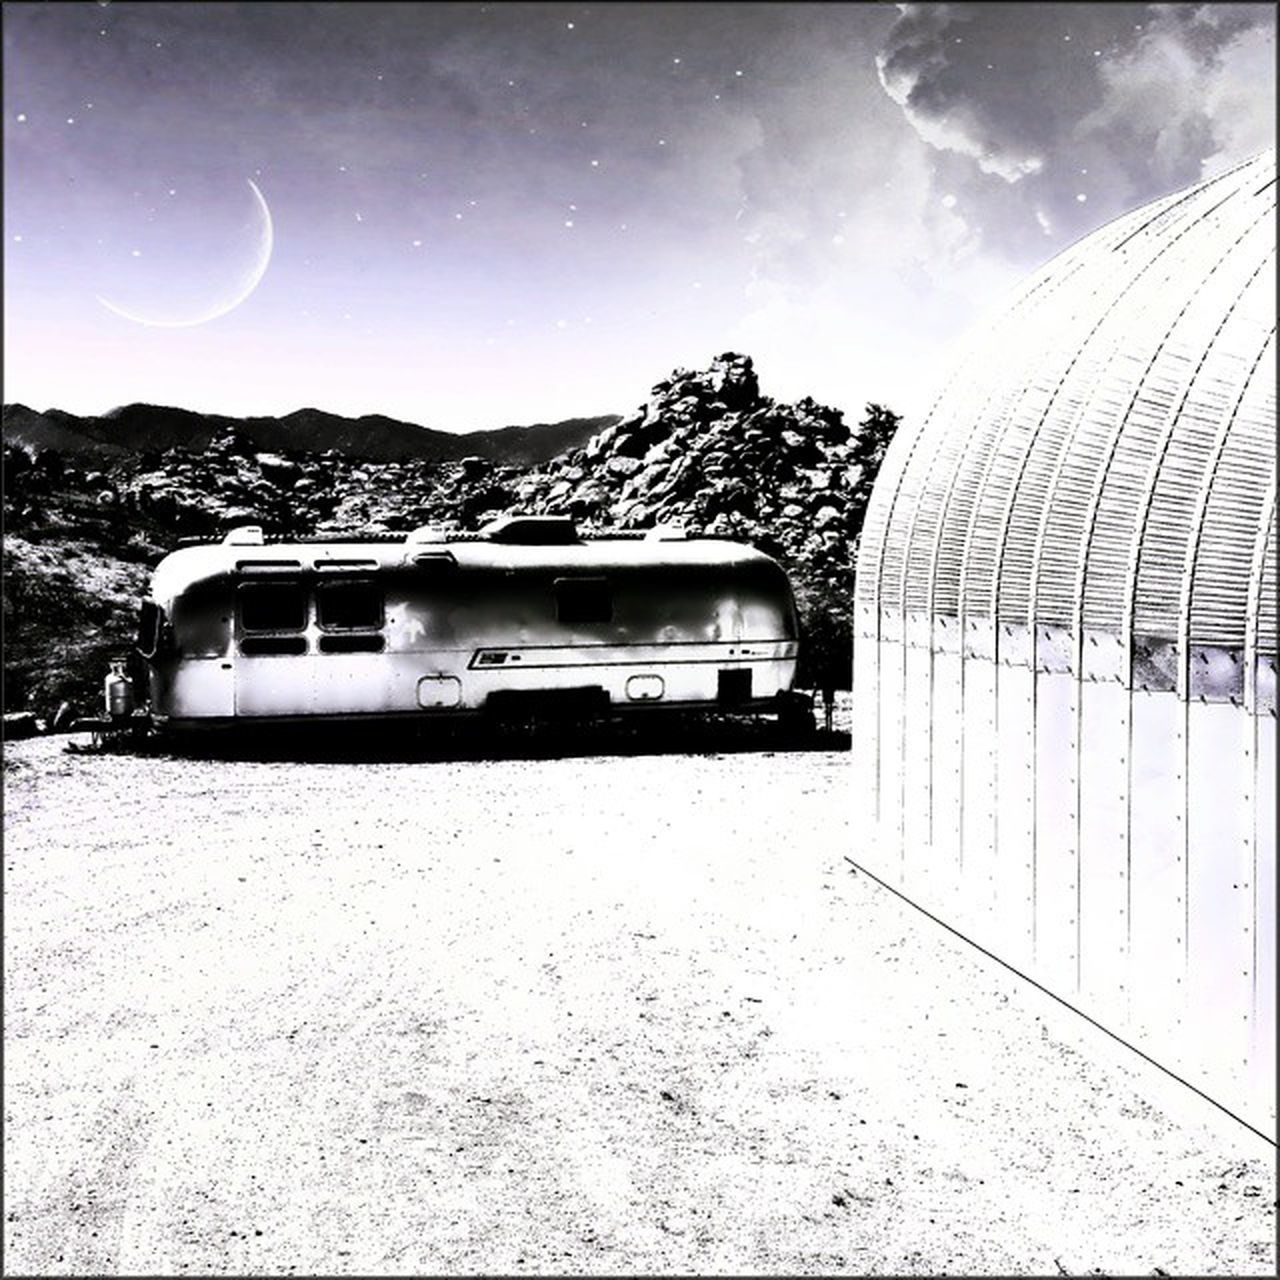 Pictureoftheday Pixlr Palmsprings Desert California Fantasy Adventure Spaceadventure Mars Leavingearth